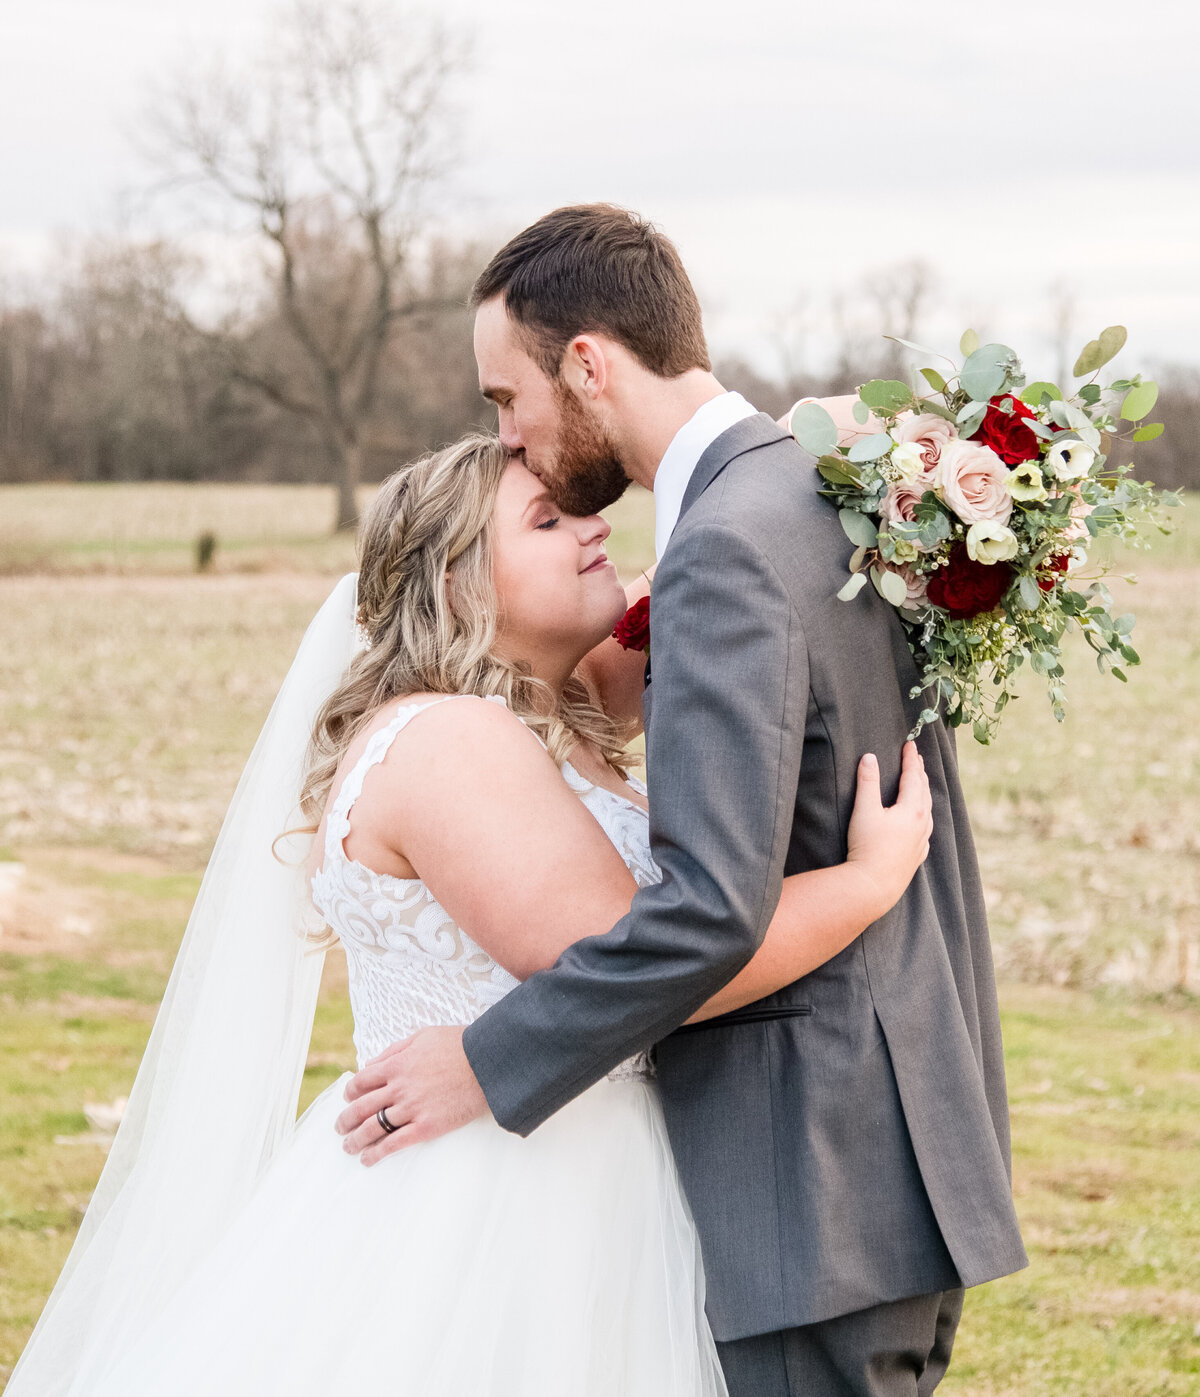 20191130-MICHELLEMCMAHONPHOTOGRAPHY (254 of 447)